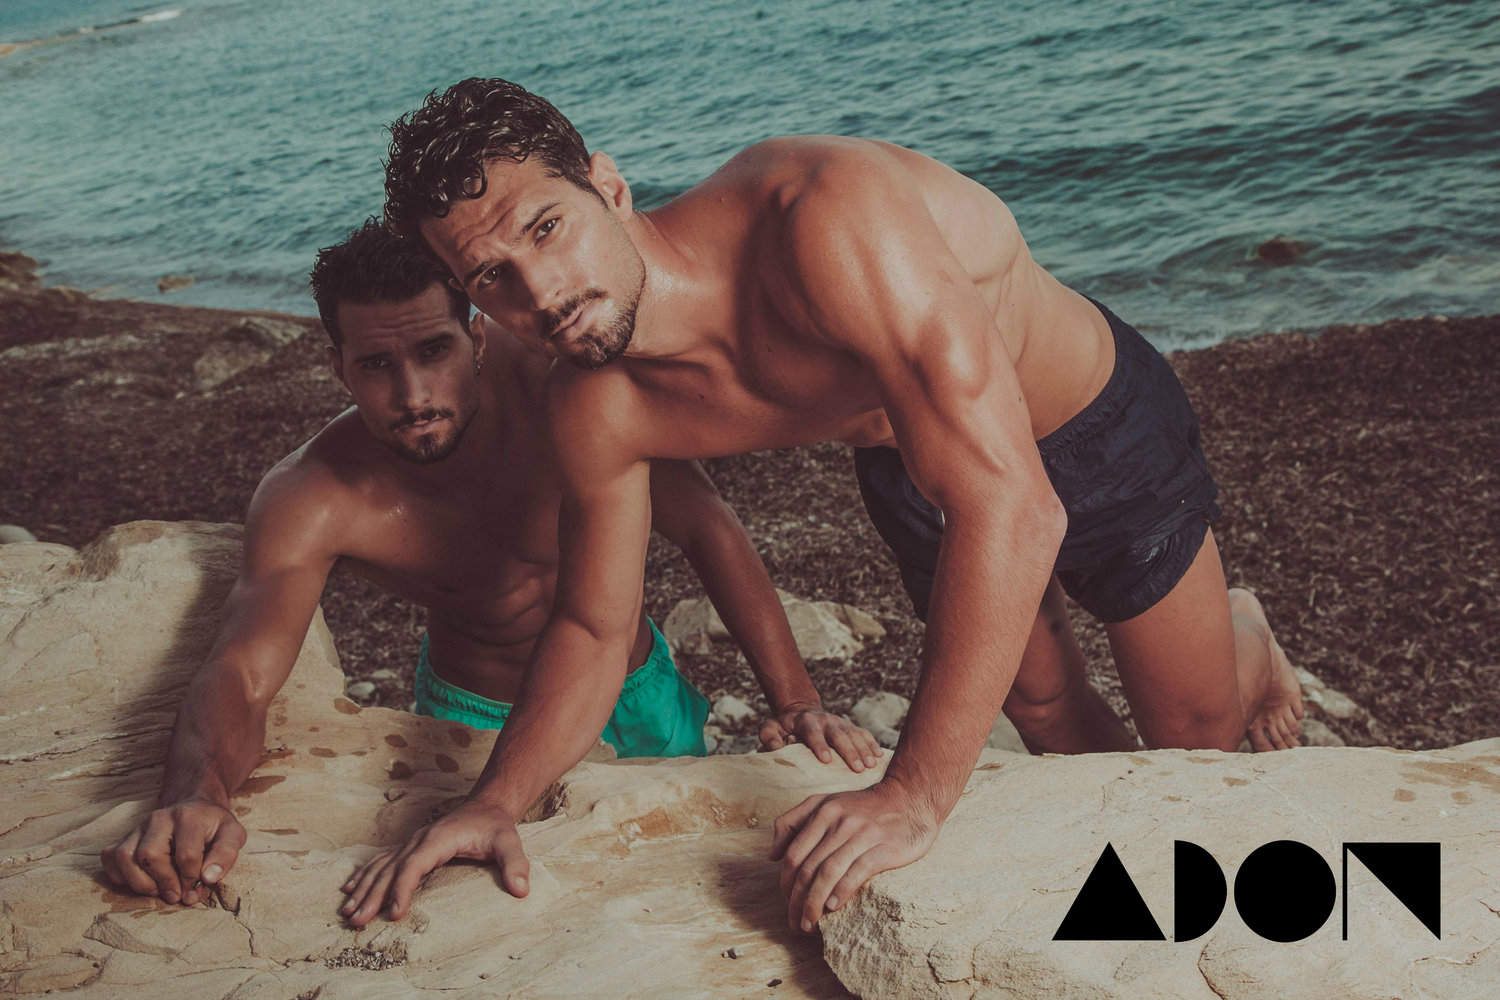 Adon Exclusive: Models Kike and Nando Tovar By Jose Martinez